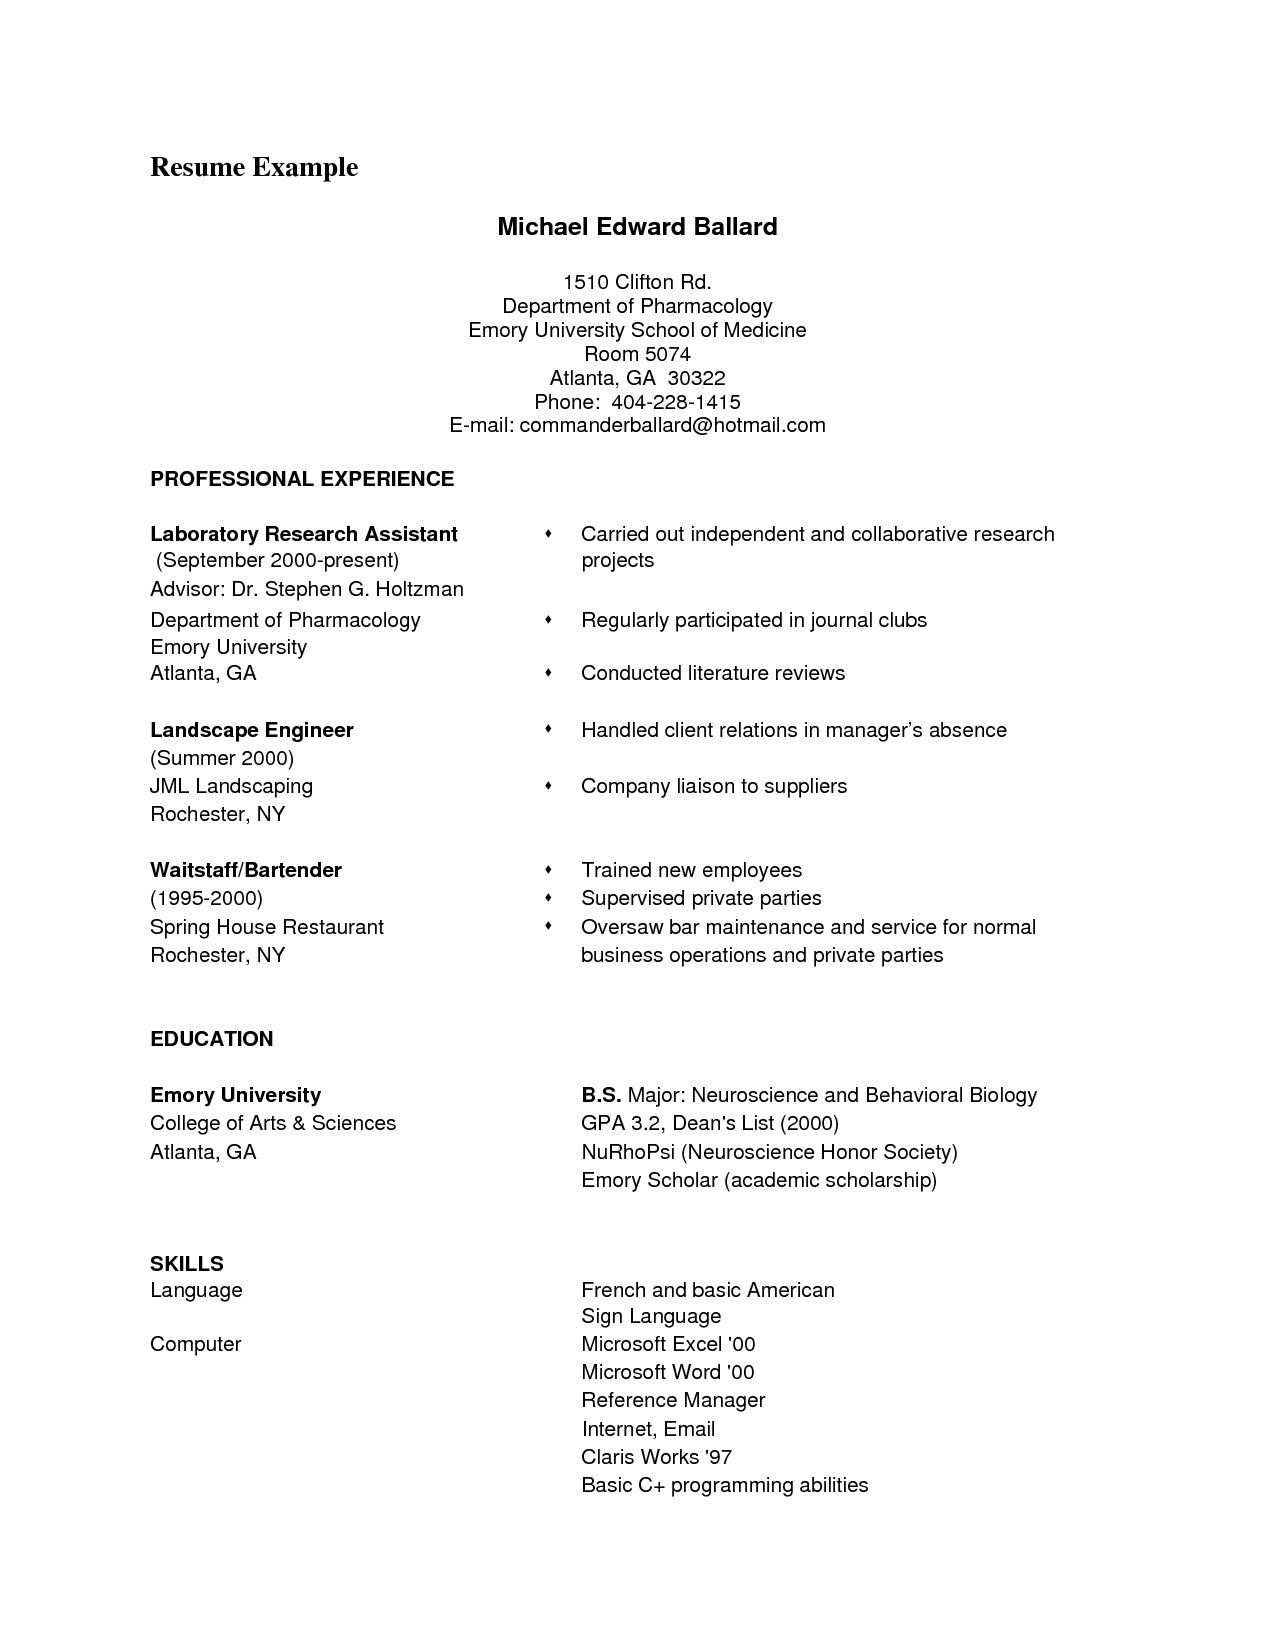 Resume Template Design Scholarship - Classic Resume Templates ¢Ë†Å¡ Powerpoint Templates for Biology New